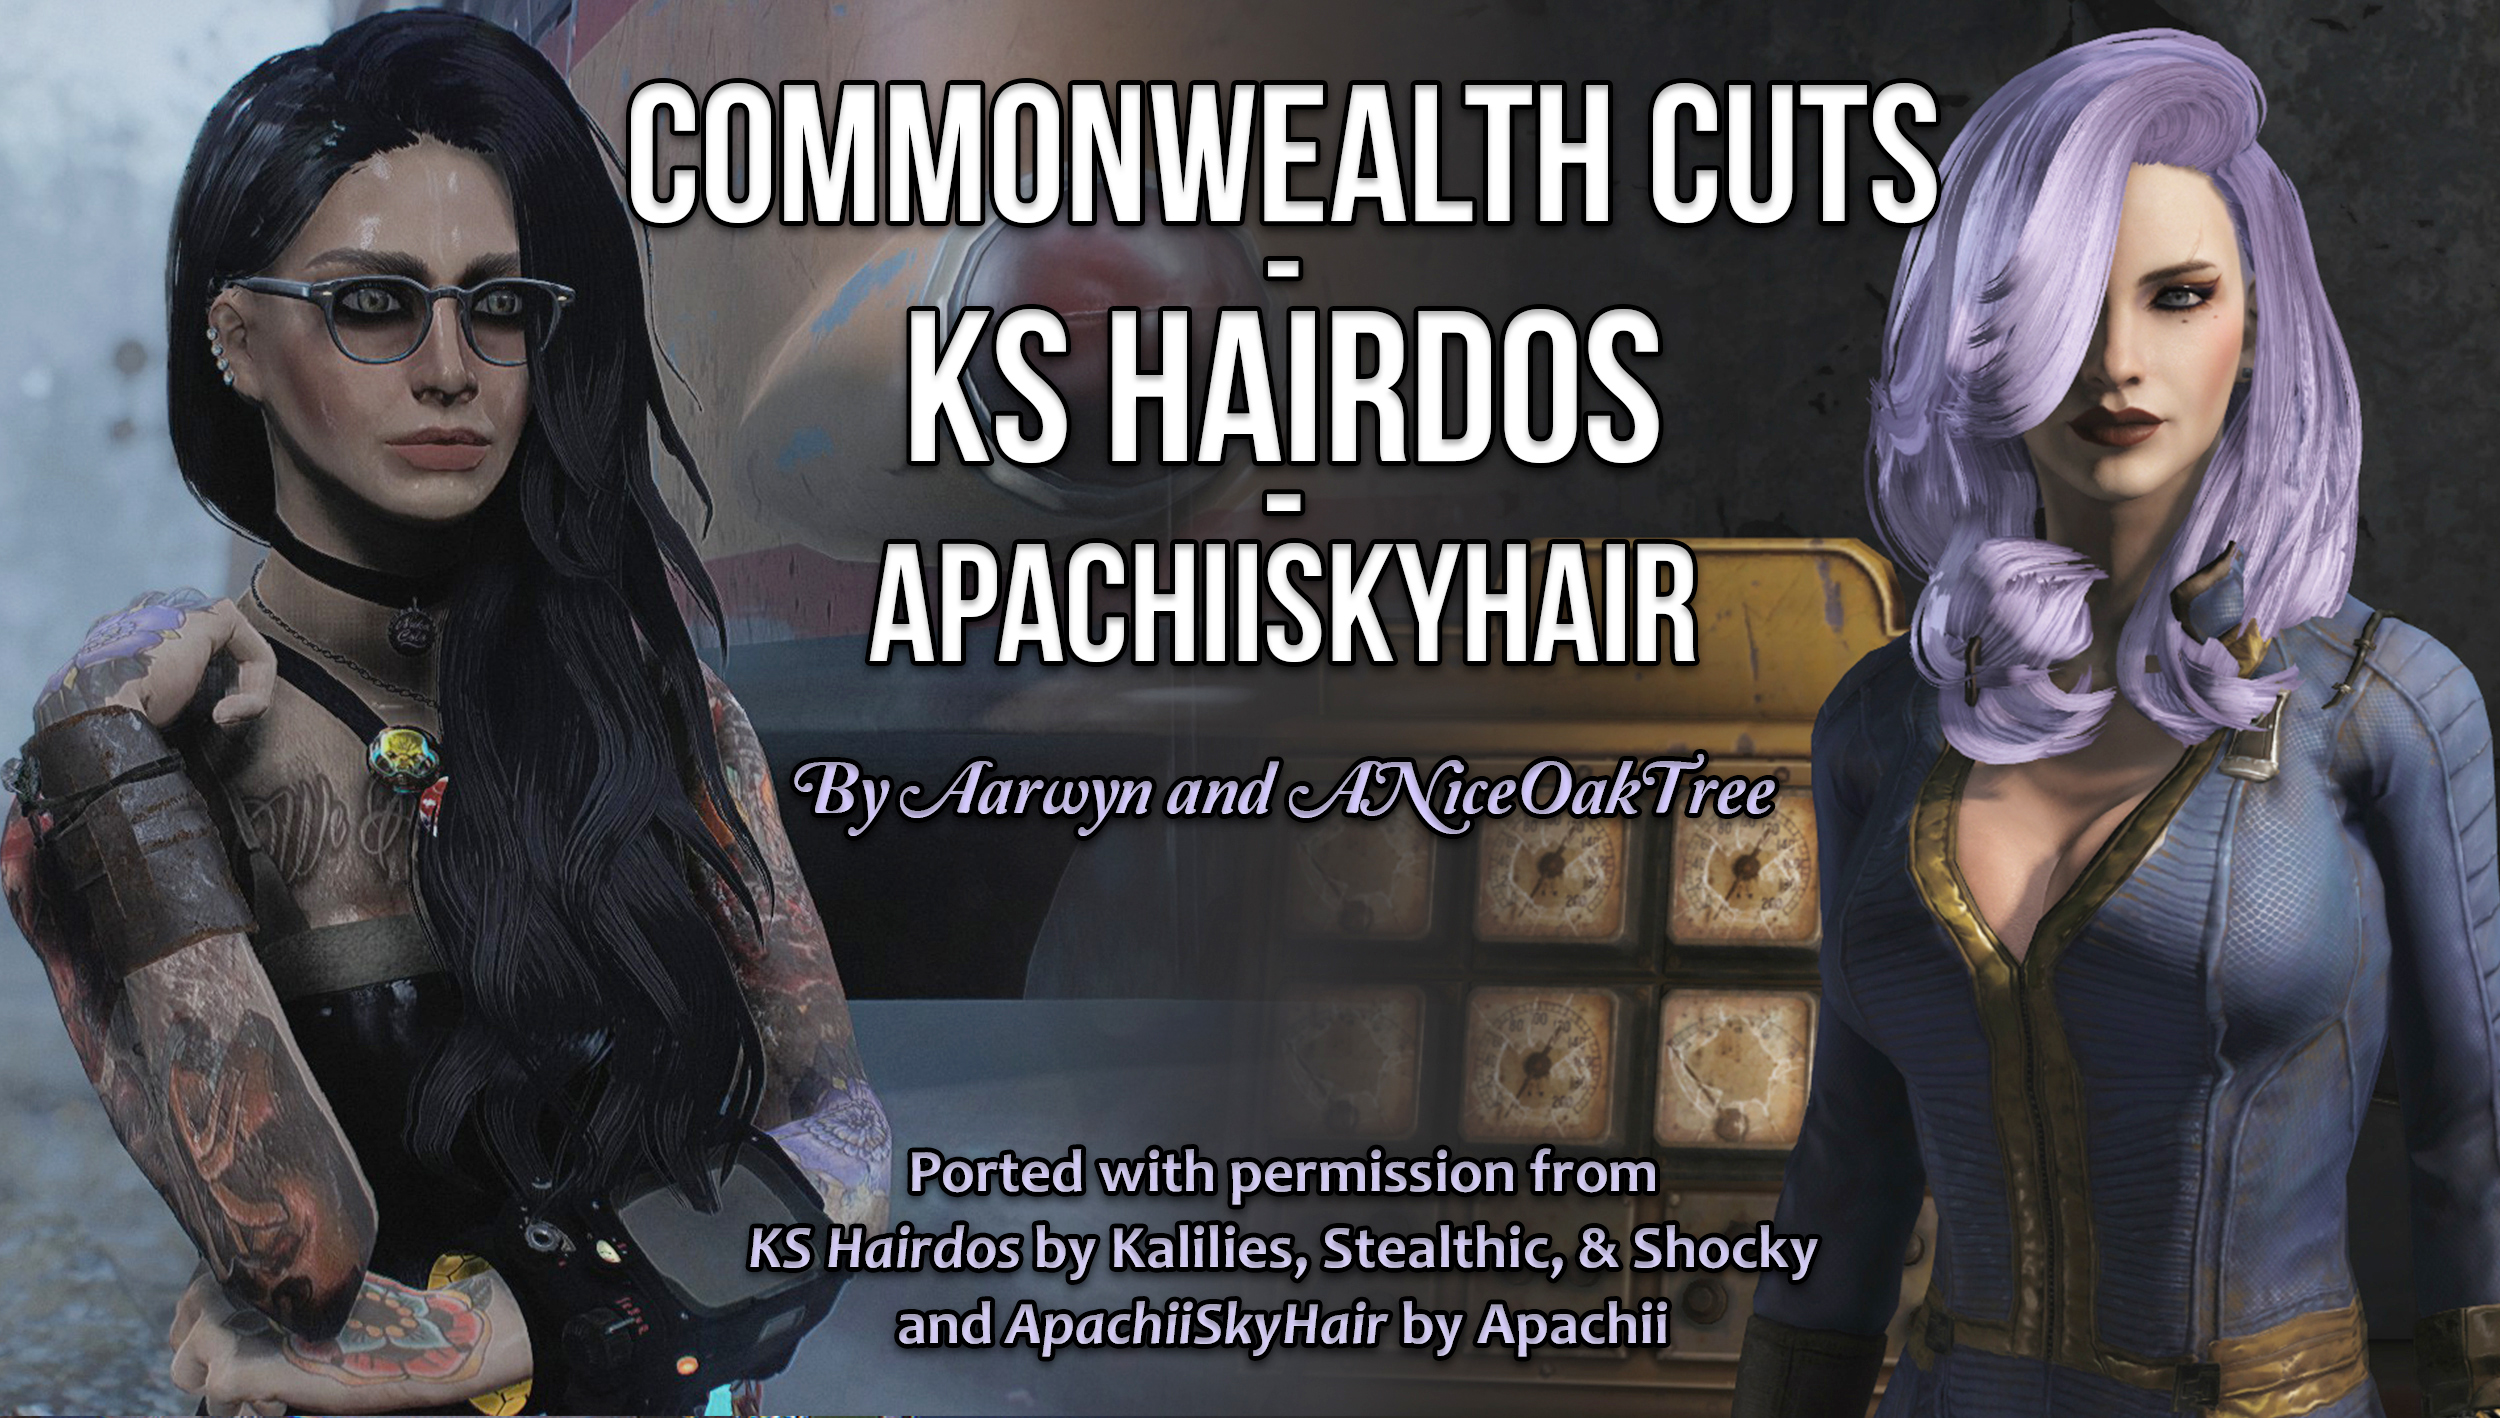 Прически Содружества Cuts KS Hairdos / Commonwealth Cuts KS Hairdos (ApachiiSkyHair)